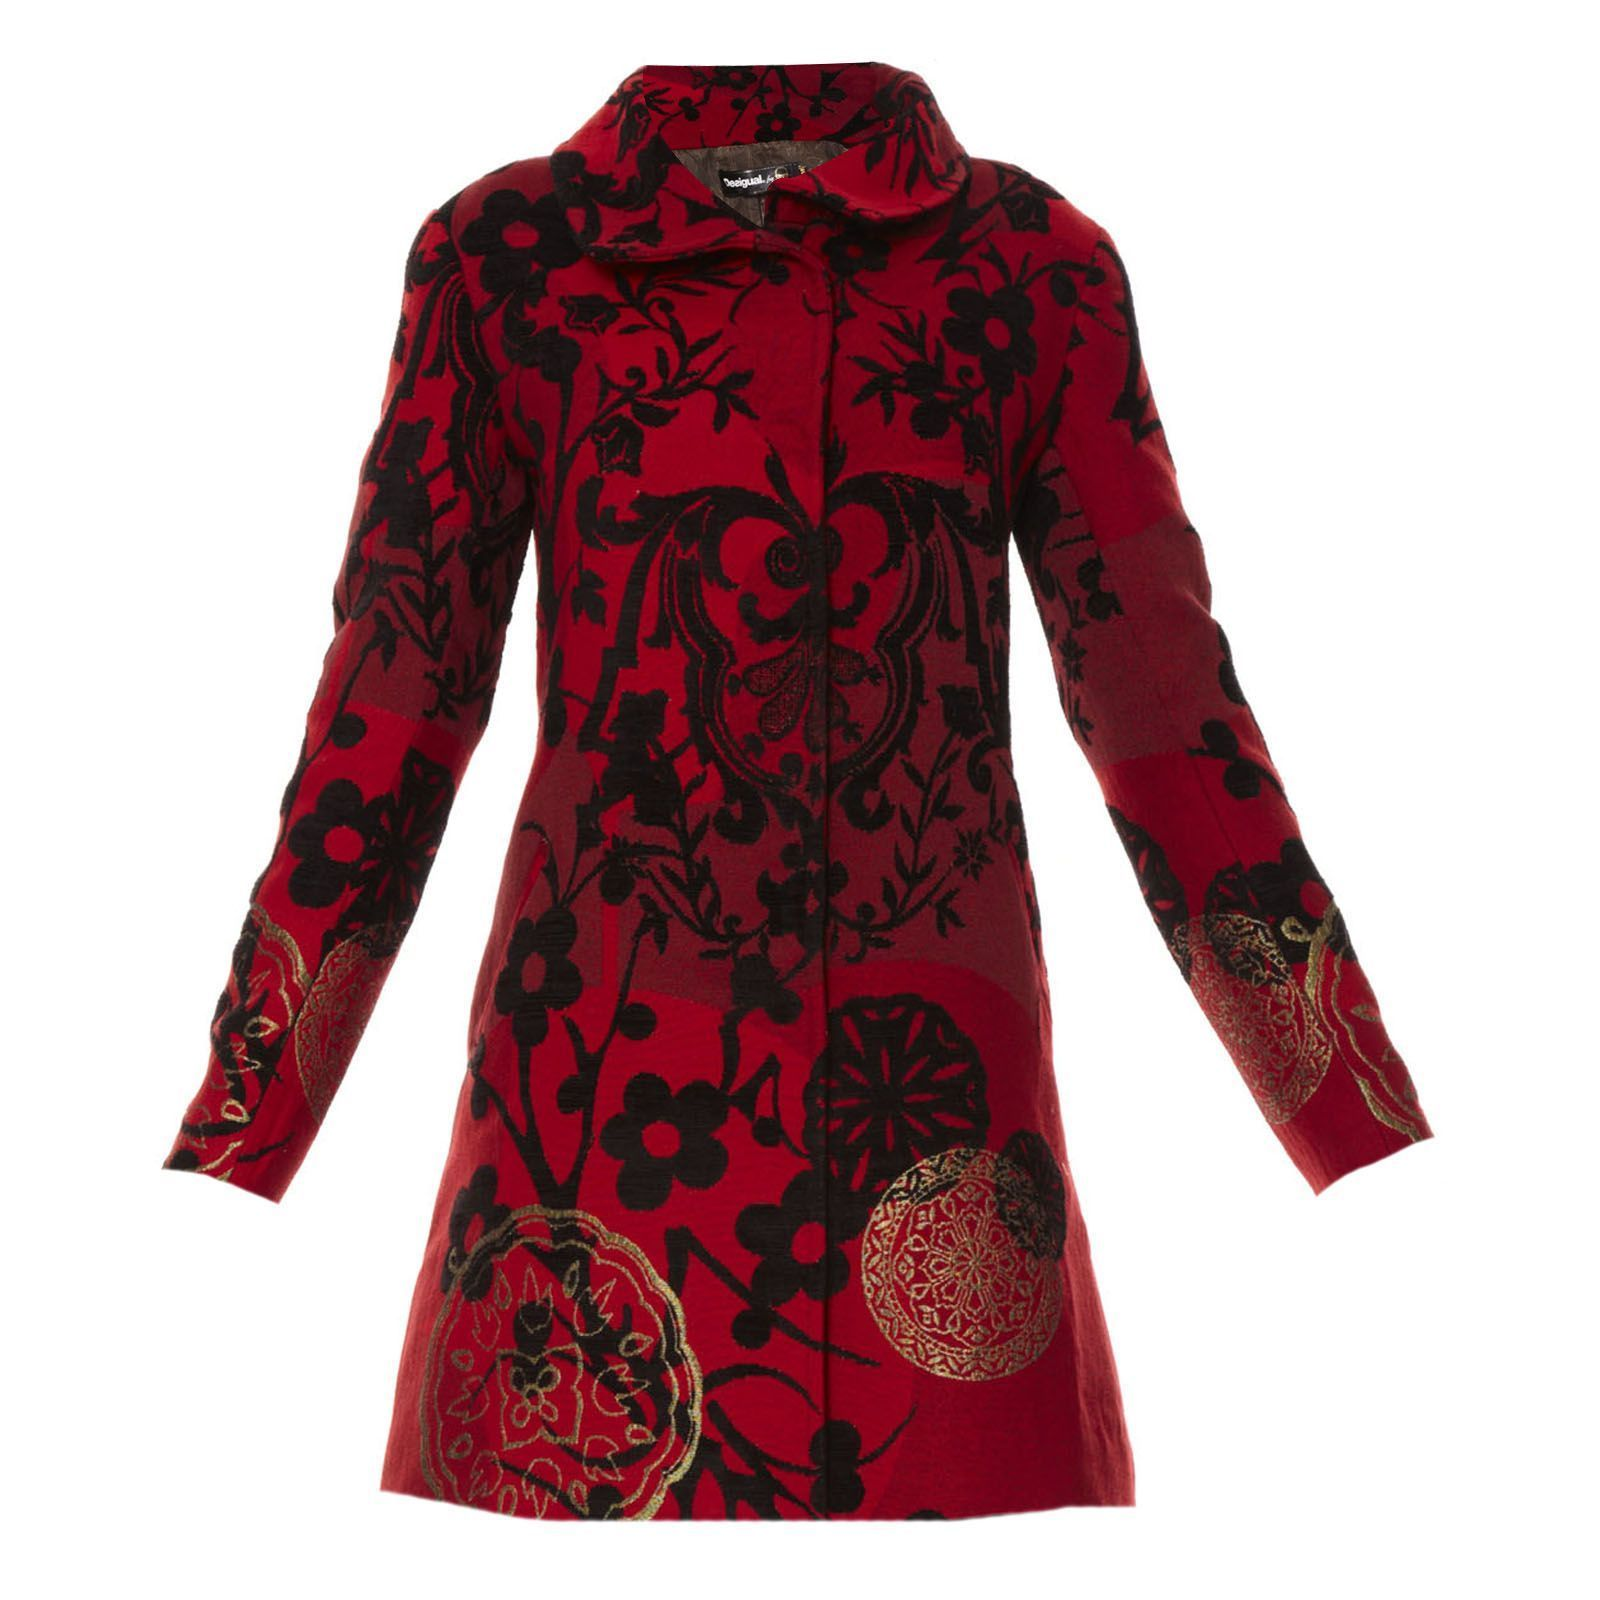 Rouge Desigual Nouvelle Collection Manteau Electric Et Love 76gvYbfyI